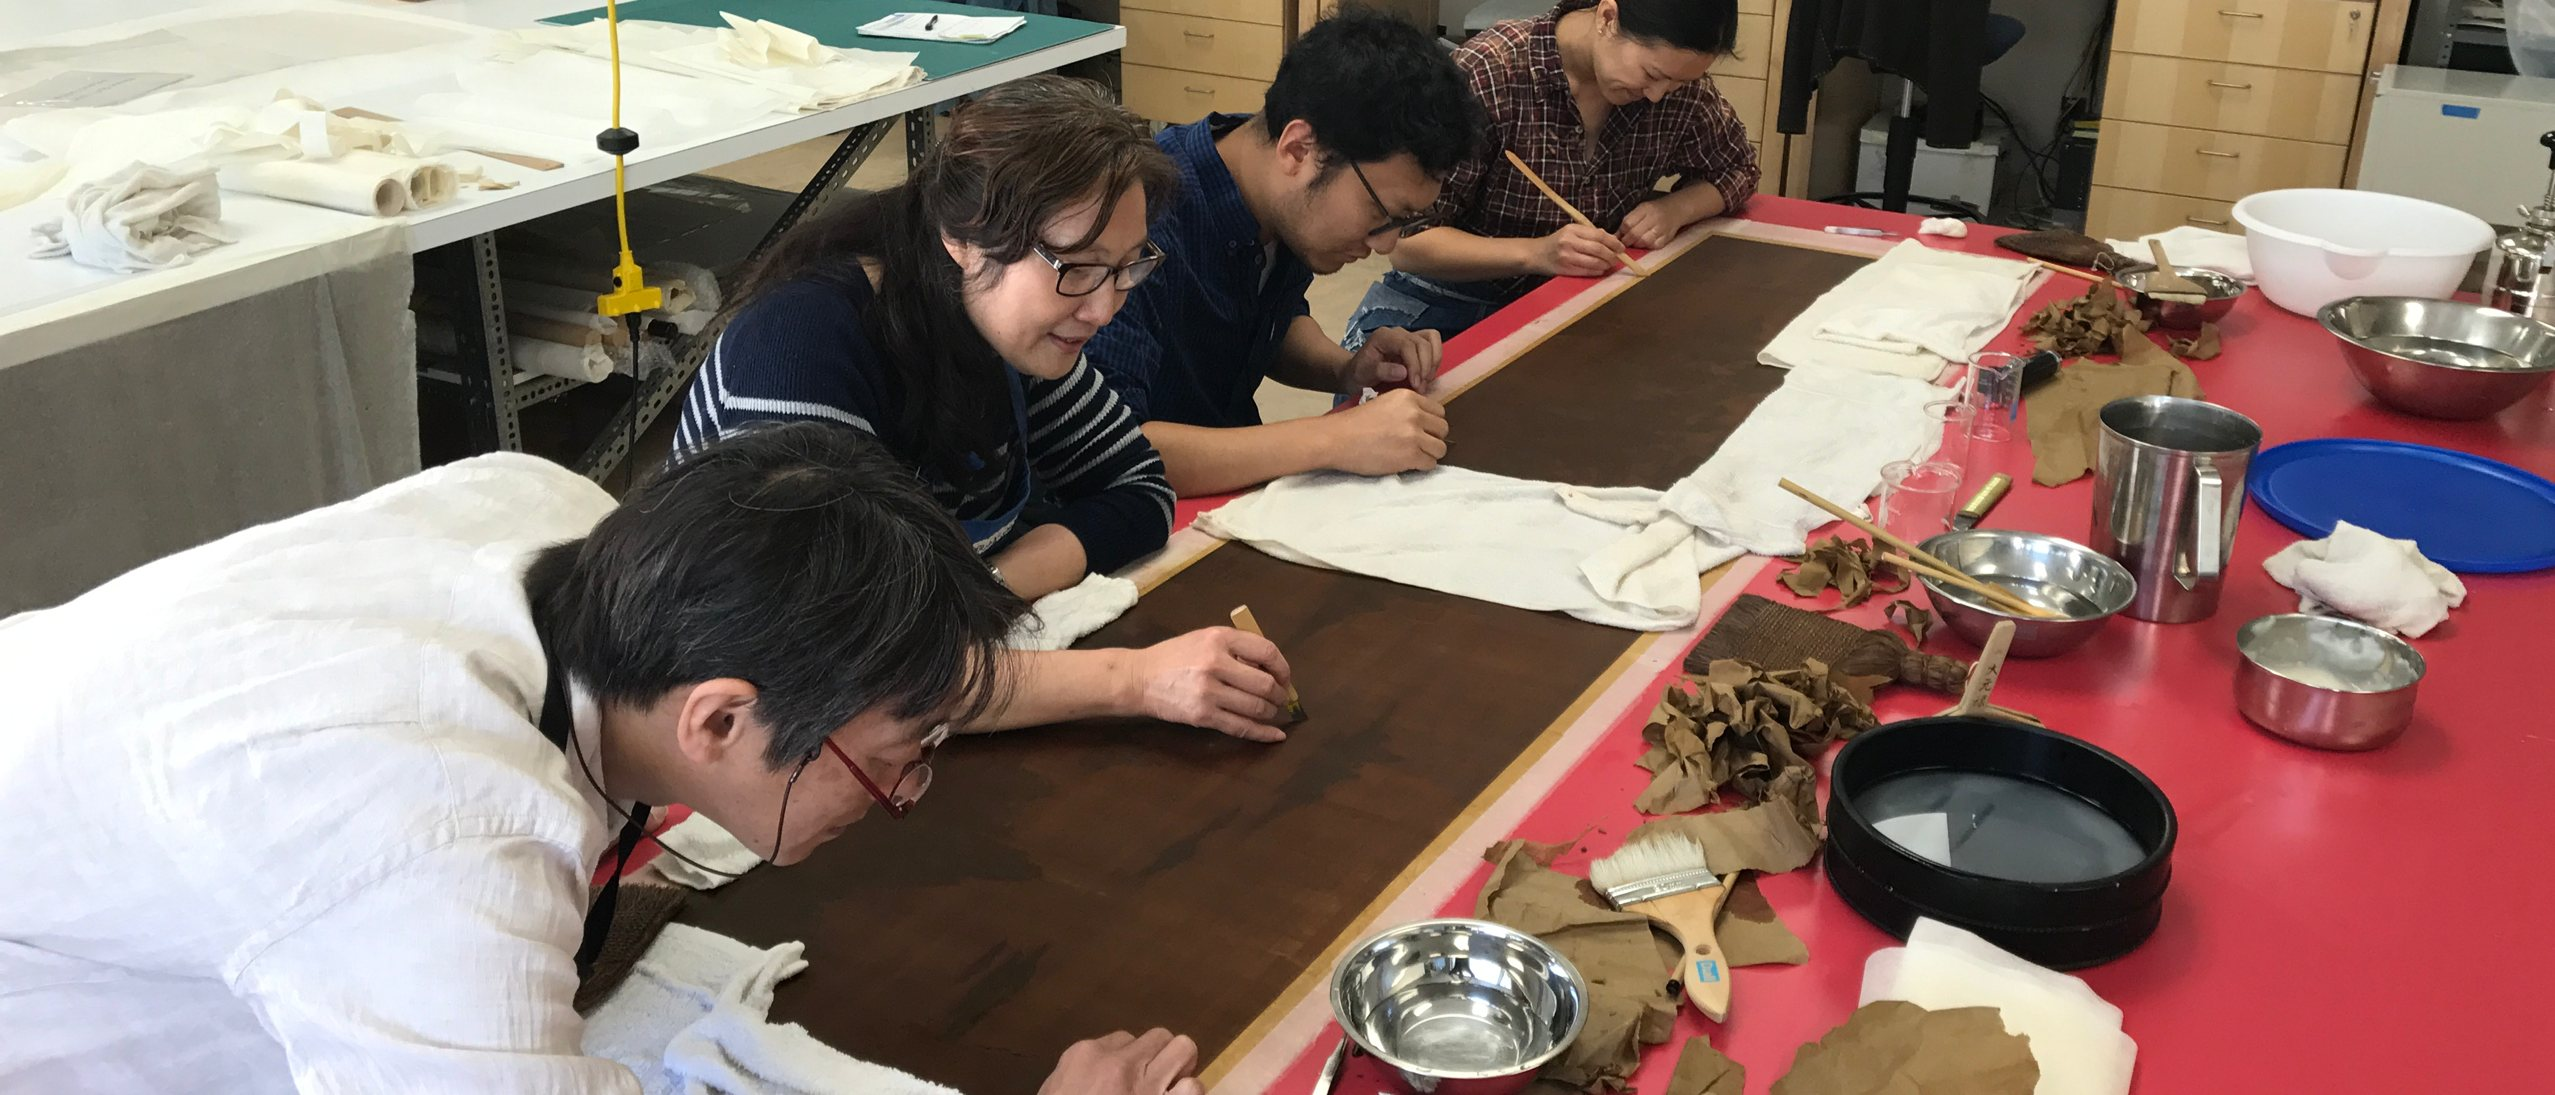 a team of four people working on paper scrolls